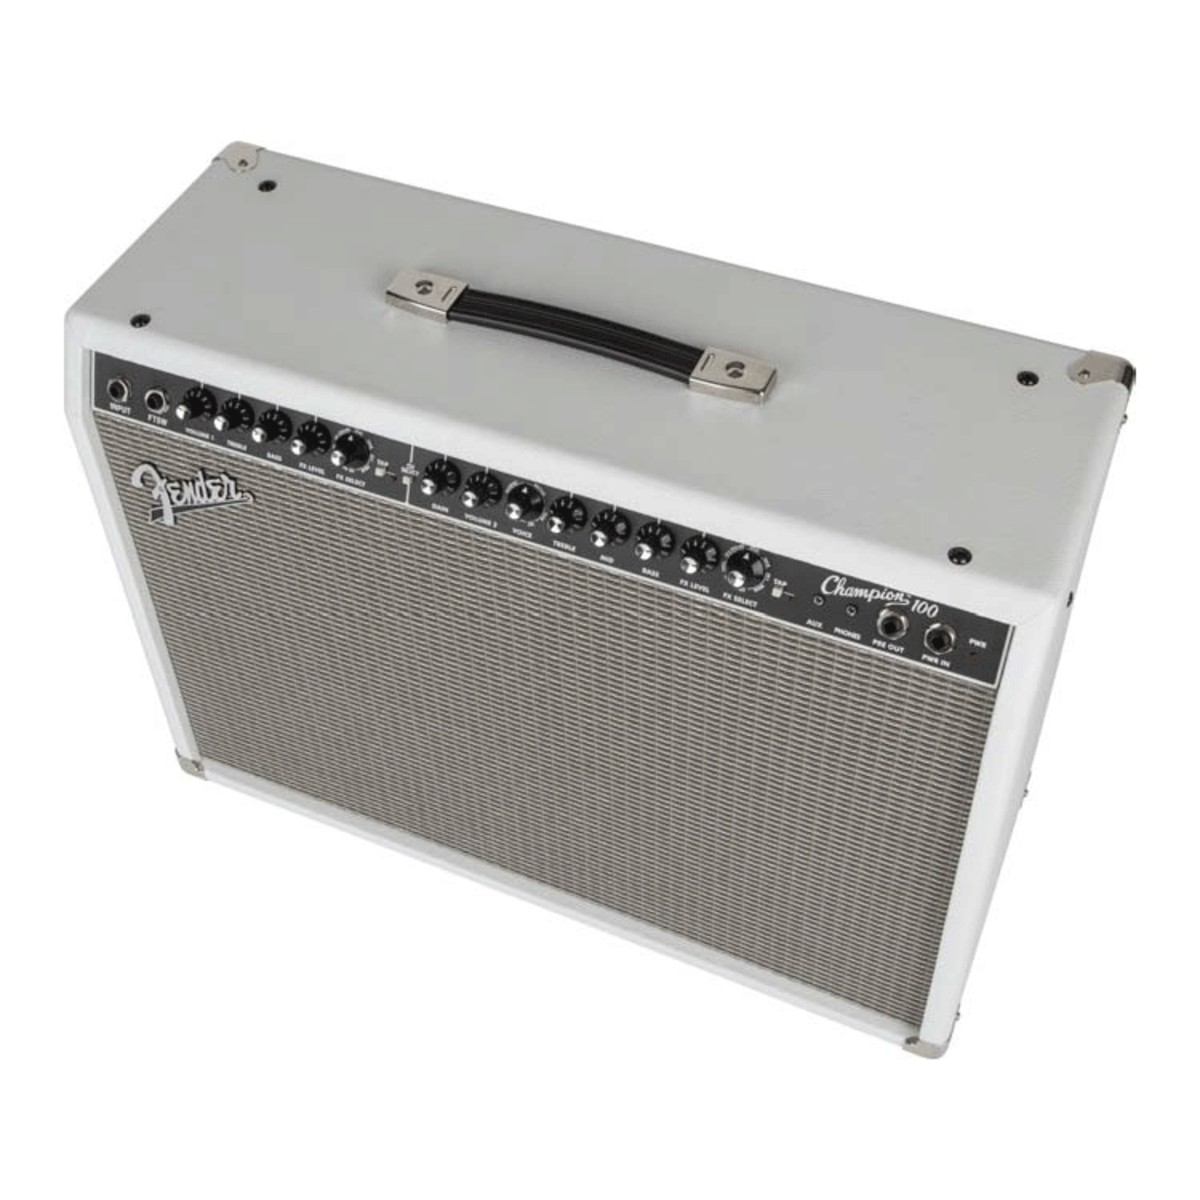 fender champion 100 limited edition guitar combo amp snow white at. Black Bedroom Furniture Sets. Home Design Ideas